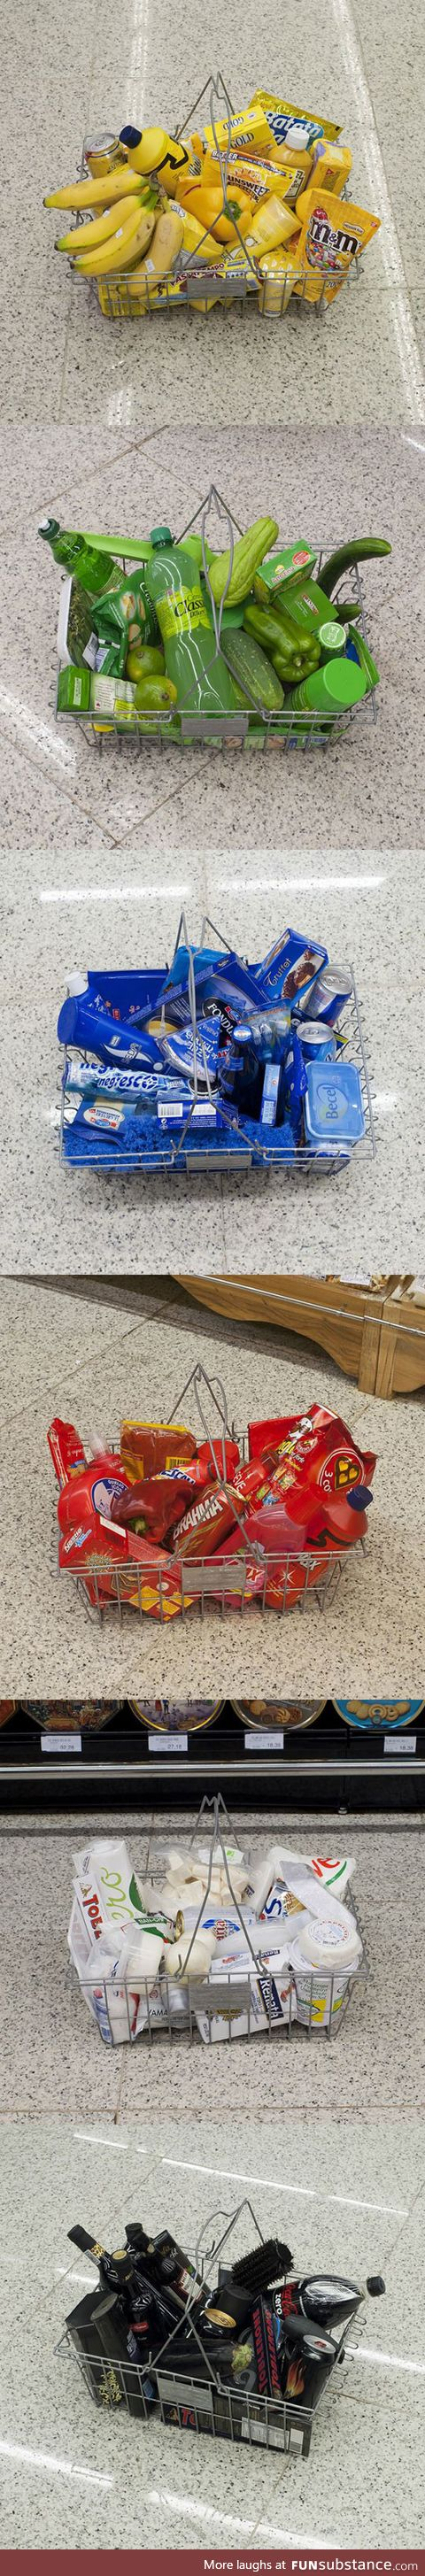 Buying groceries by color